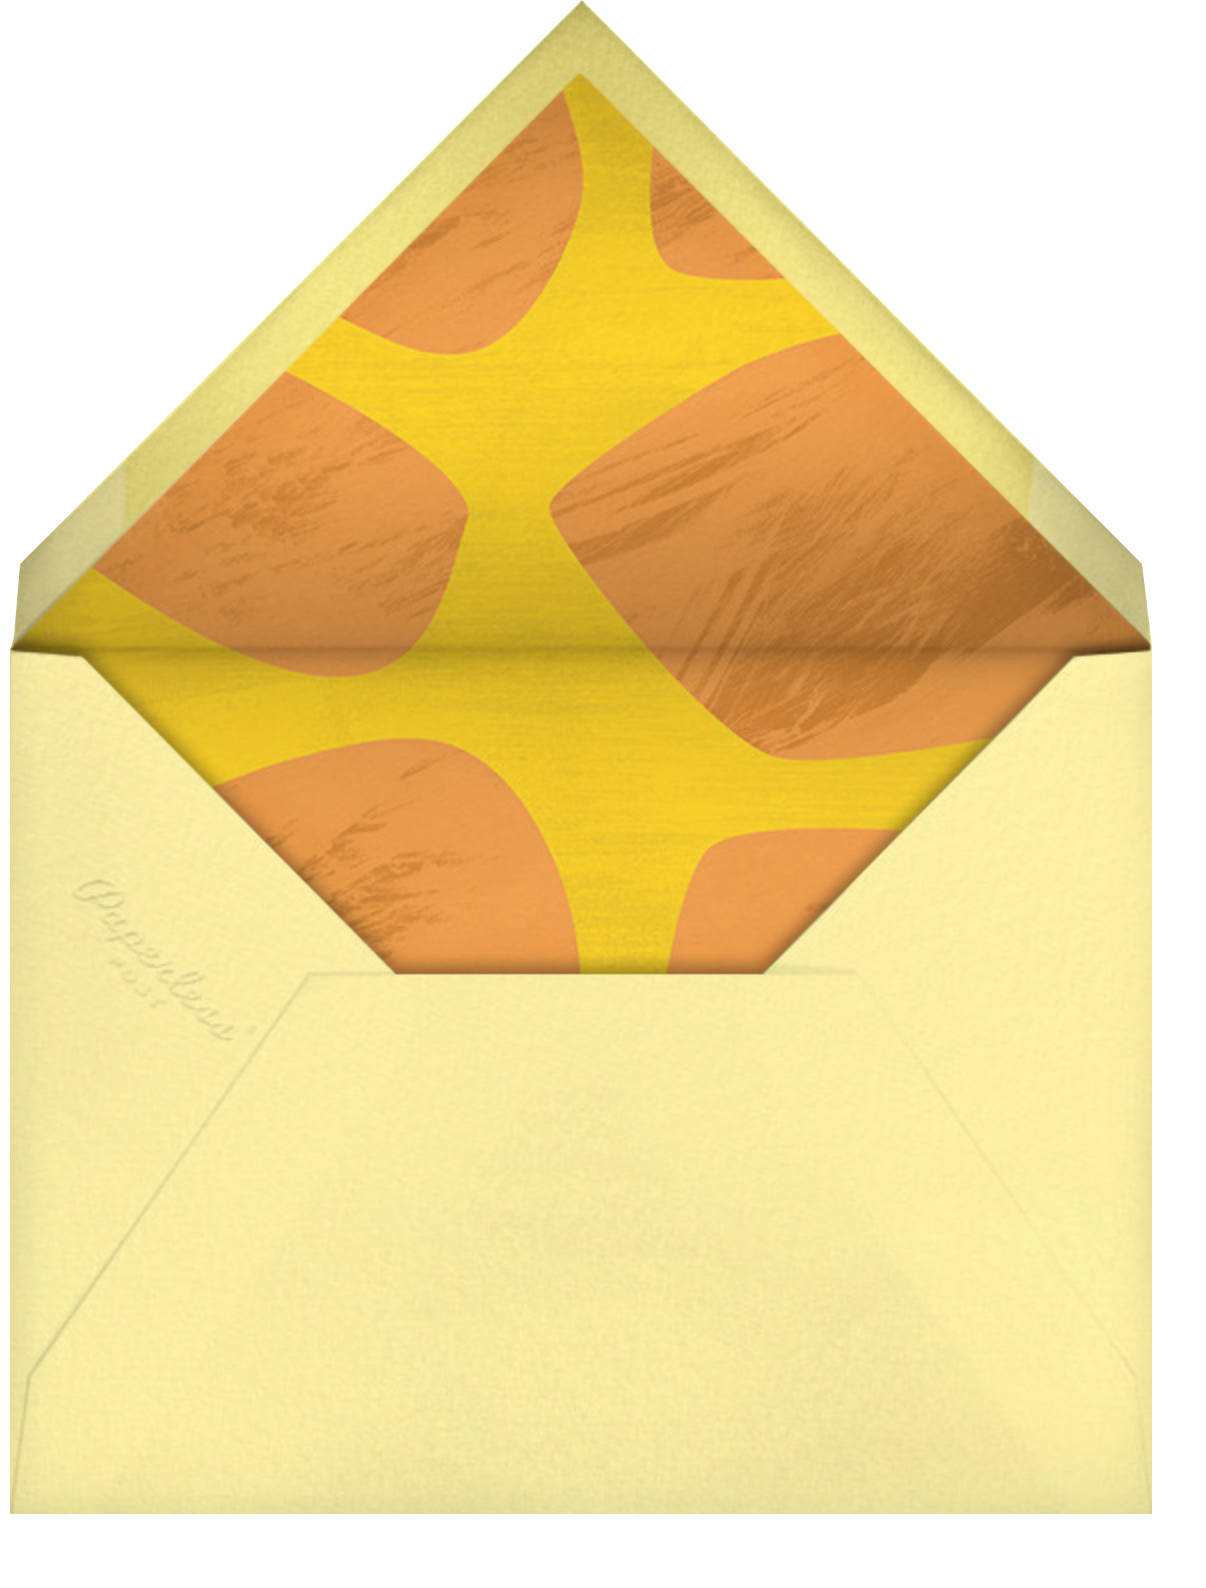 Chin Up - Paperless Post - Thinking of you - envelope back